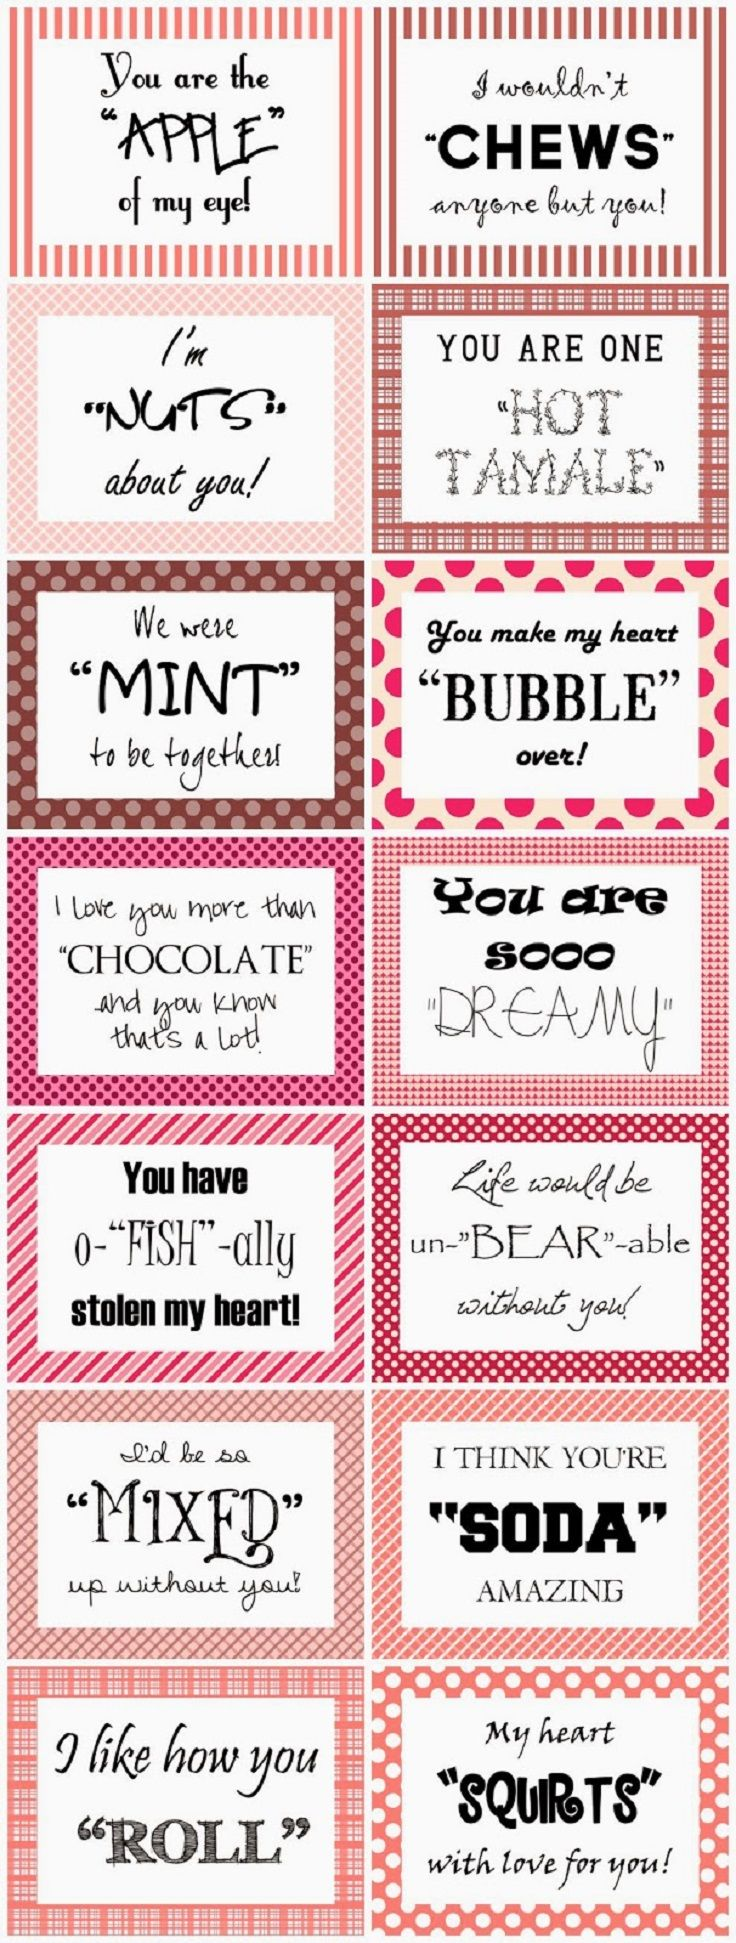 Cute and Funny Valentine's Day Card Ideas - 14 Heartwarming DIY Valentine's Day Cards To Wow Your Valentine